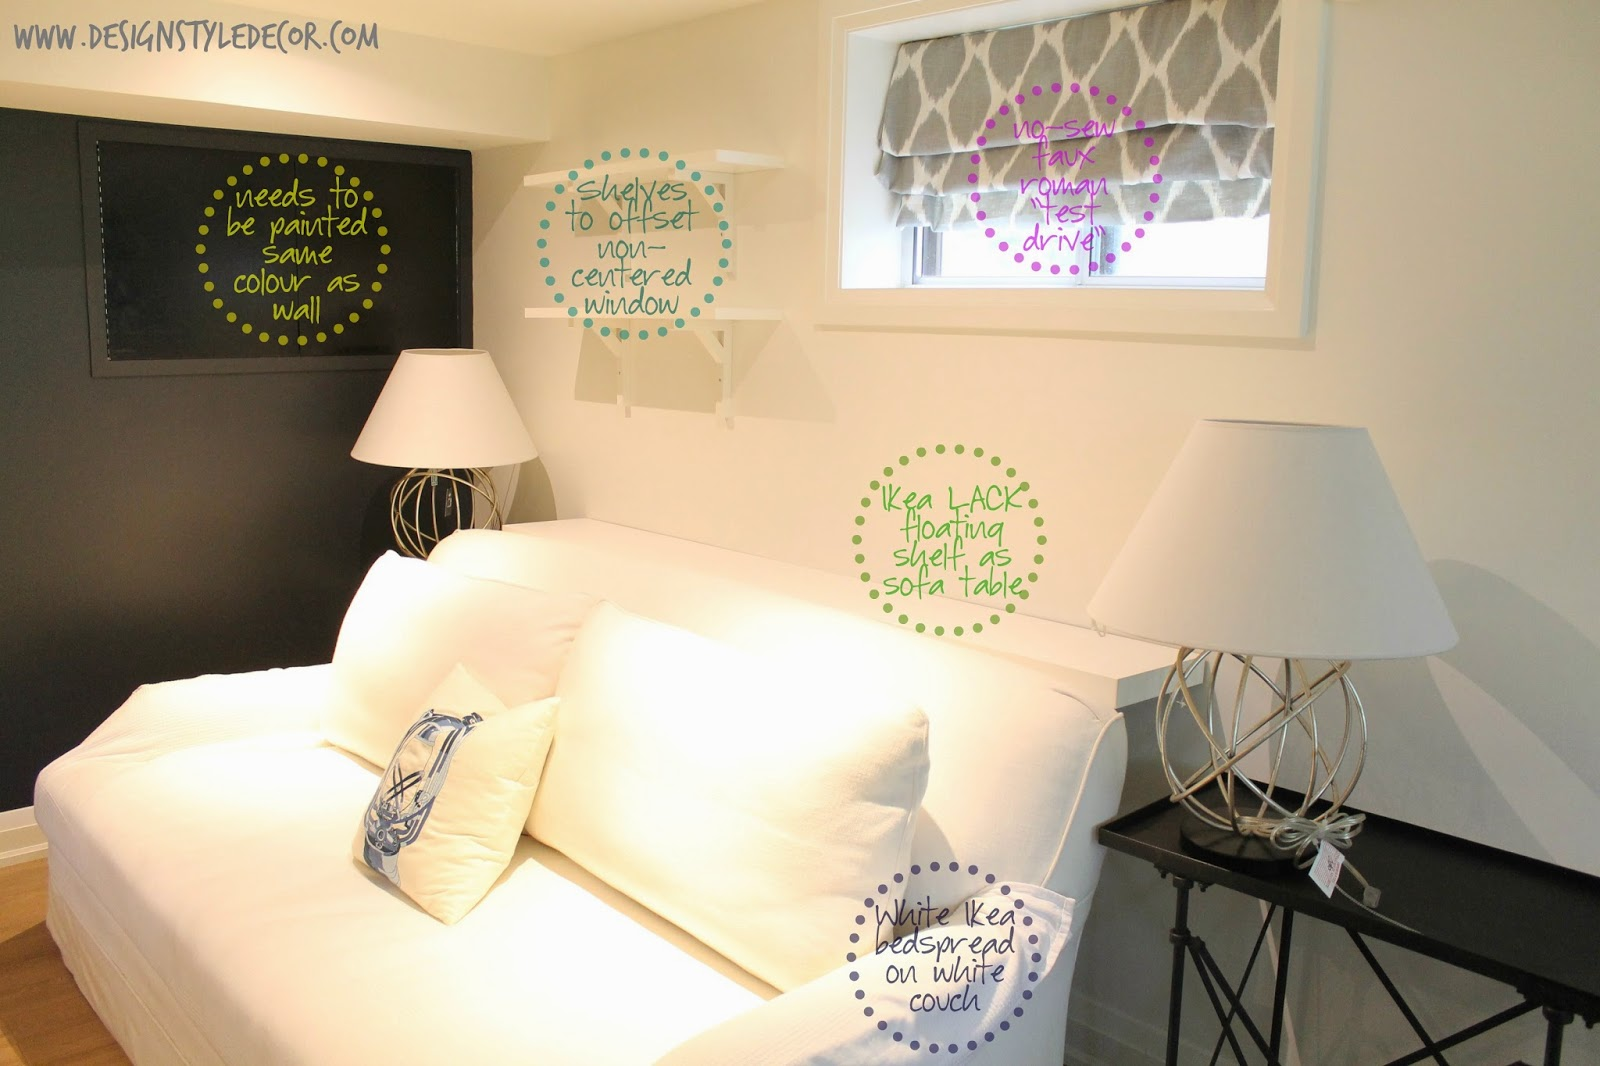 Design.Style.Decor: [home]: More of Basement Reveal